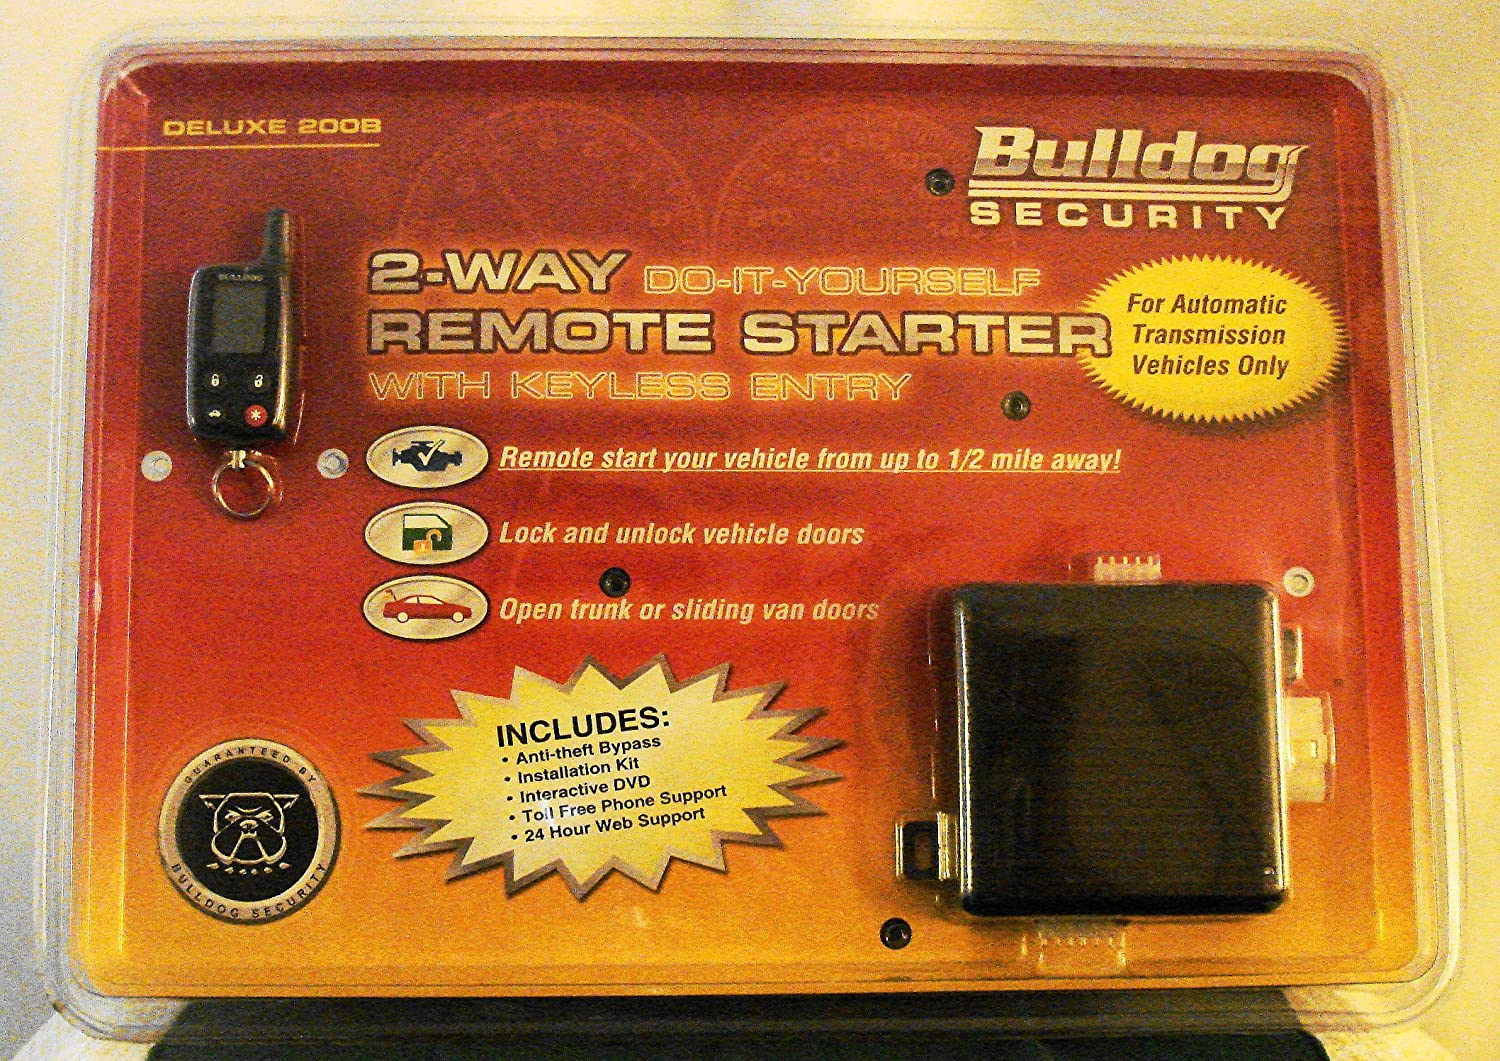 Wonderful Compustar Remote Start Installation Manual Tiny How To Install A Remote Car Starter Video Flat How To Install A Remote Start Alarm Hss Guitar Wiring Old 5 Way Switch 2 Humbuckers GraySolar Power Connection Diagram Amazon.com: Bulldog Security 2 Way Do It Yourself Remote Vehicle ..